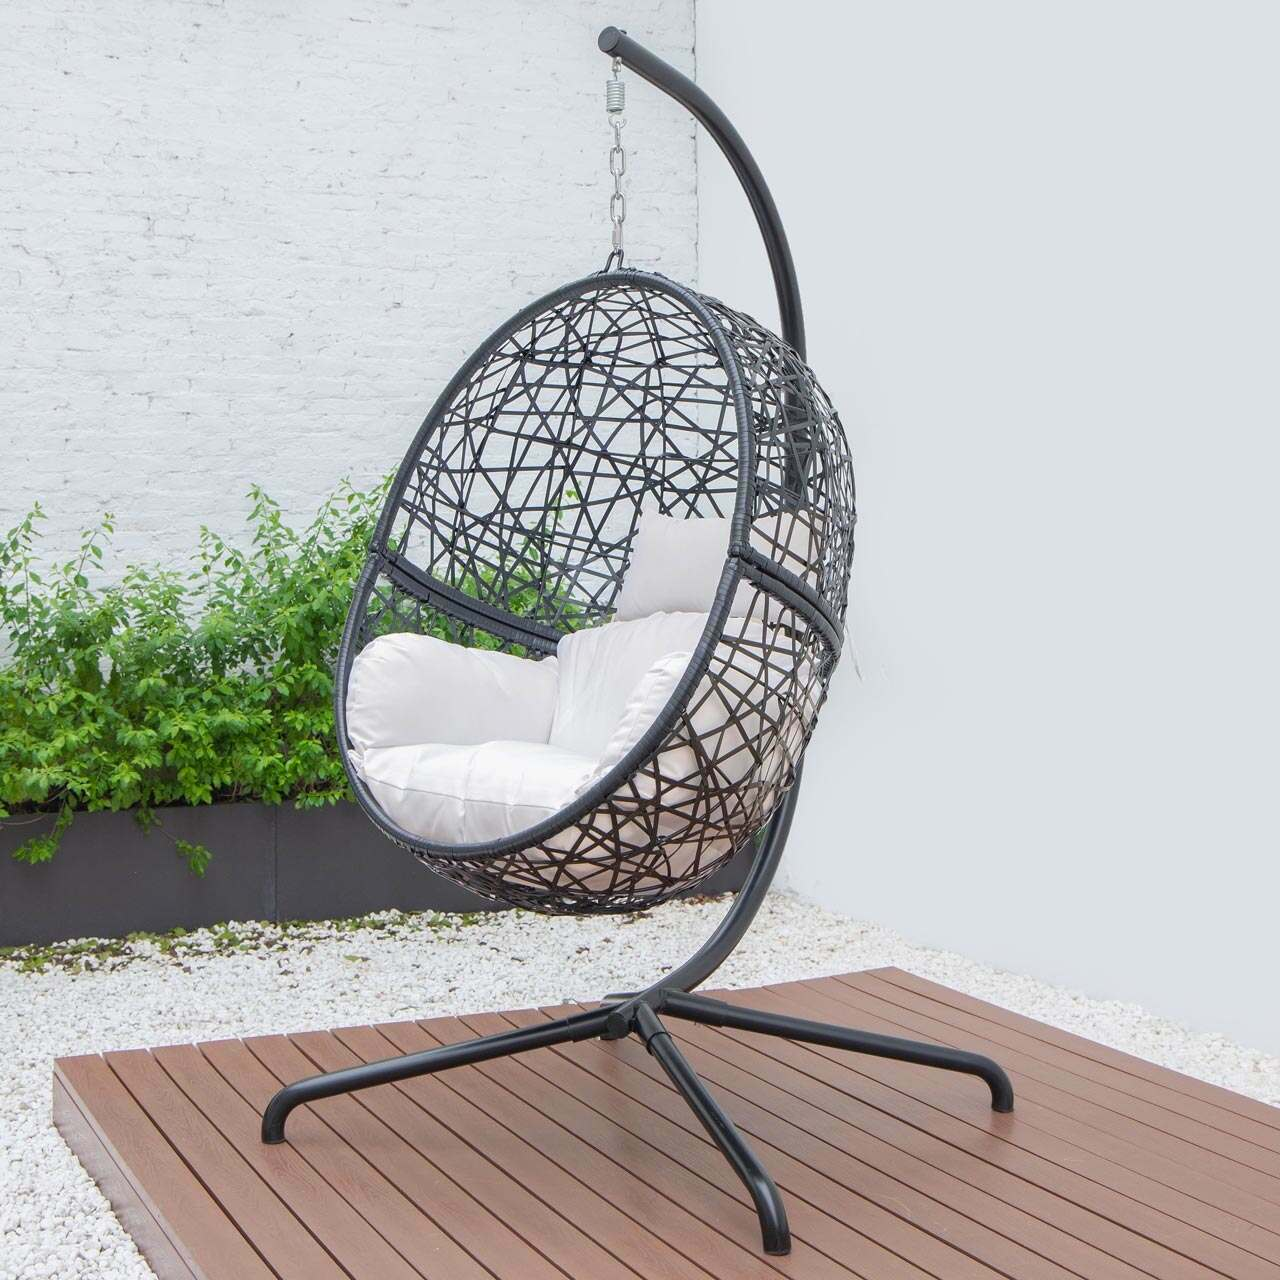 Harrier Hanging Egg Swing Chairs 2 Sizes Net World Sports